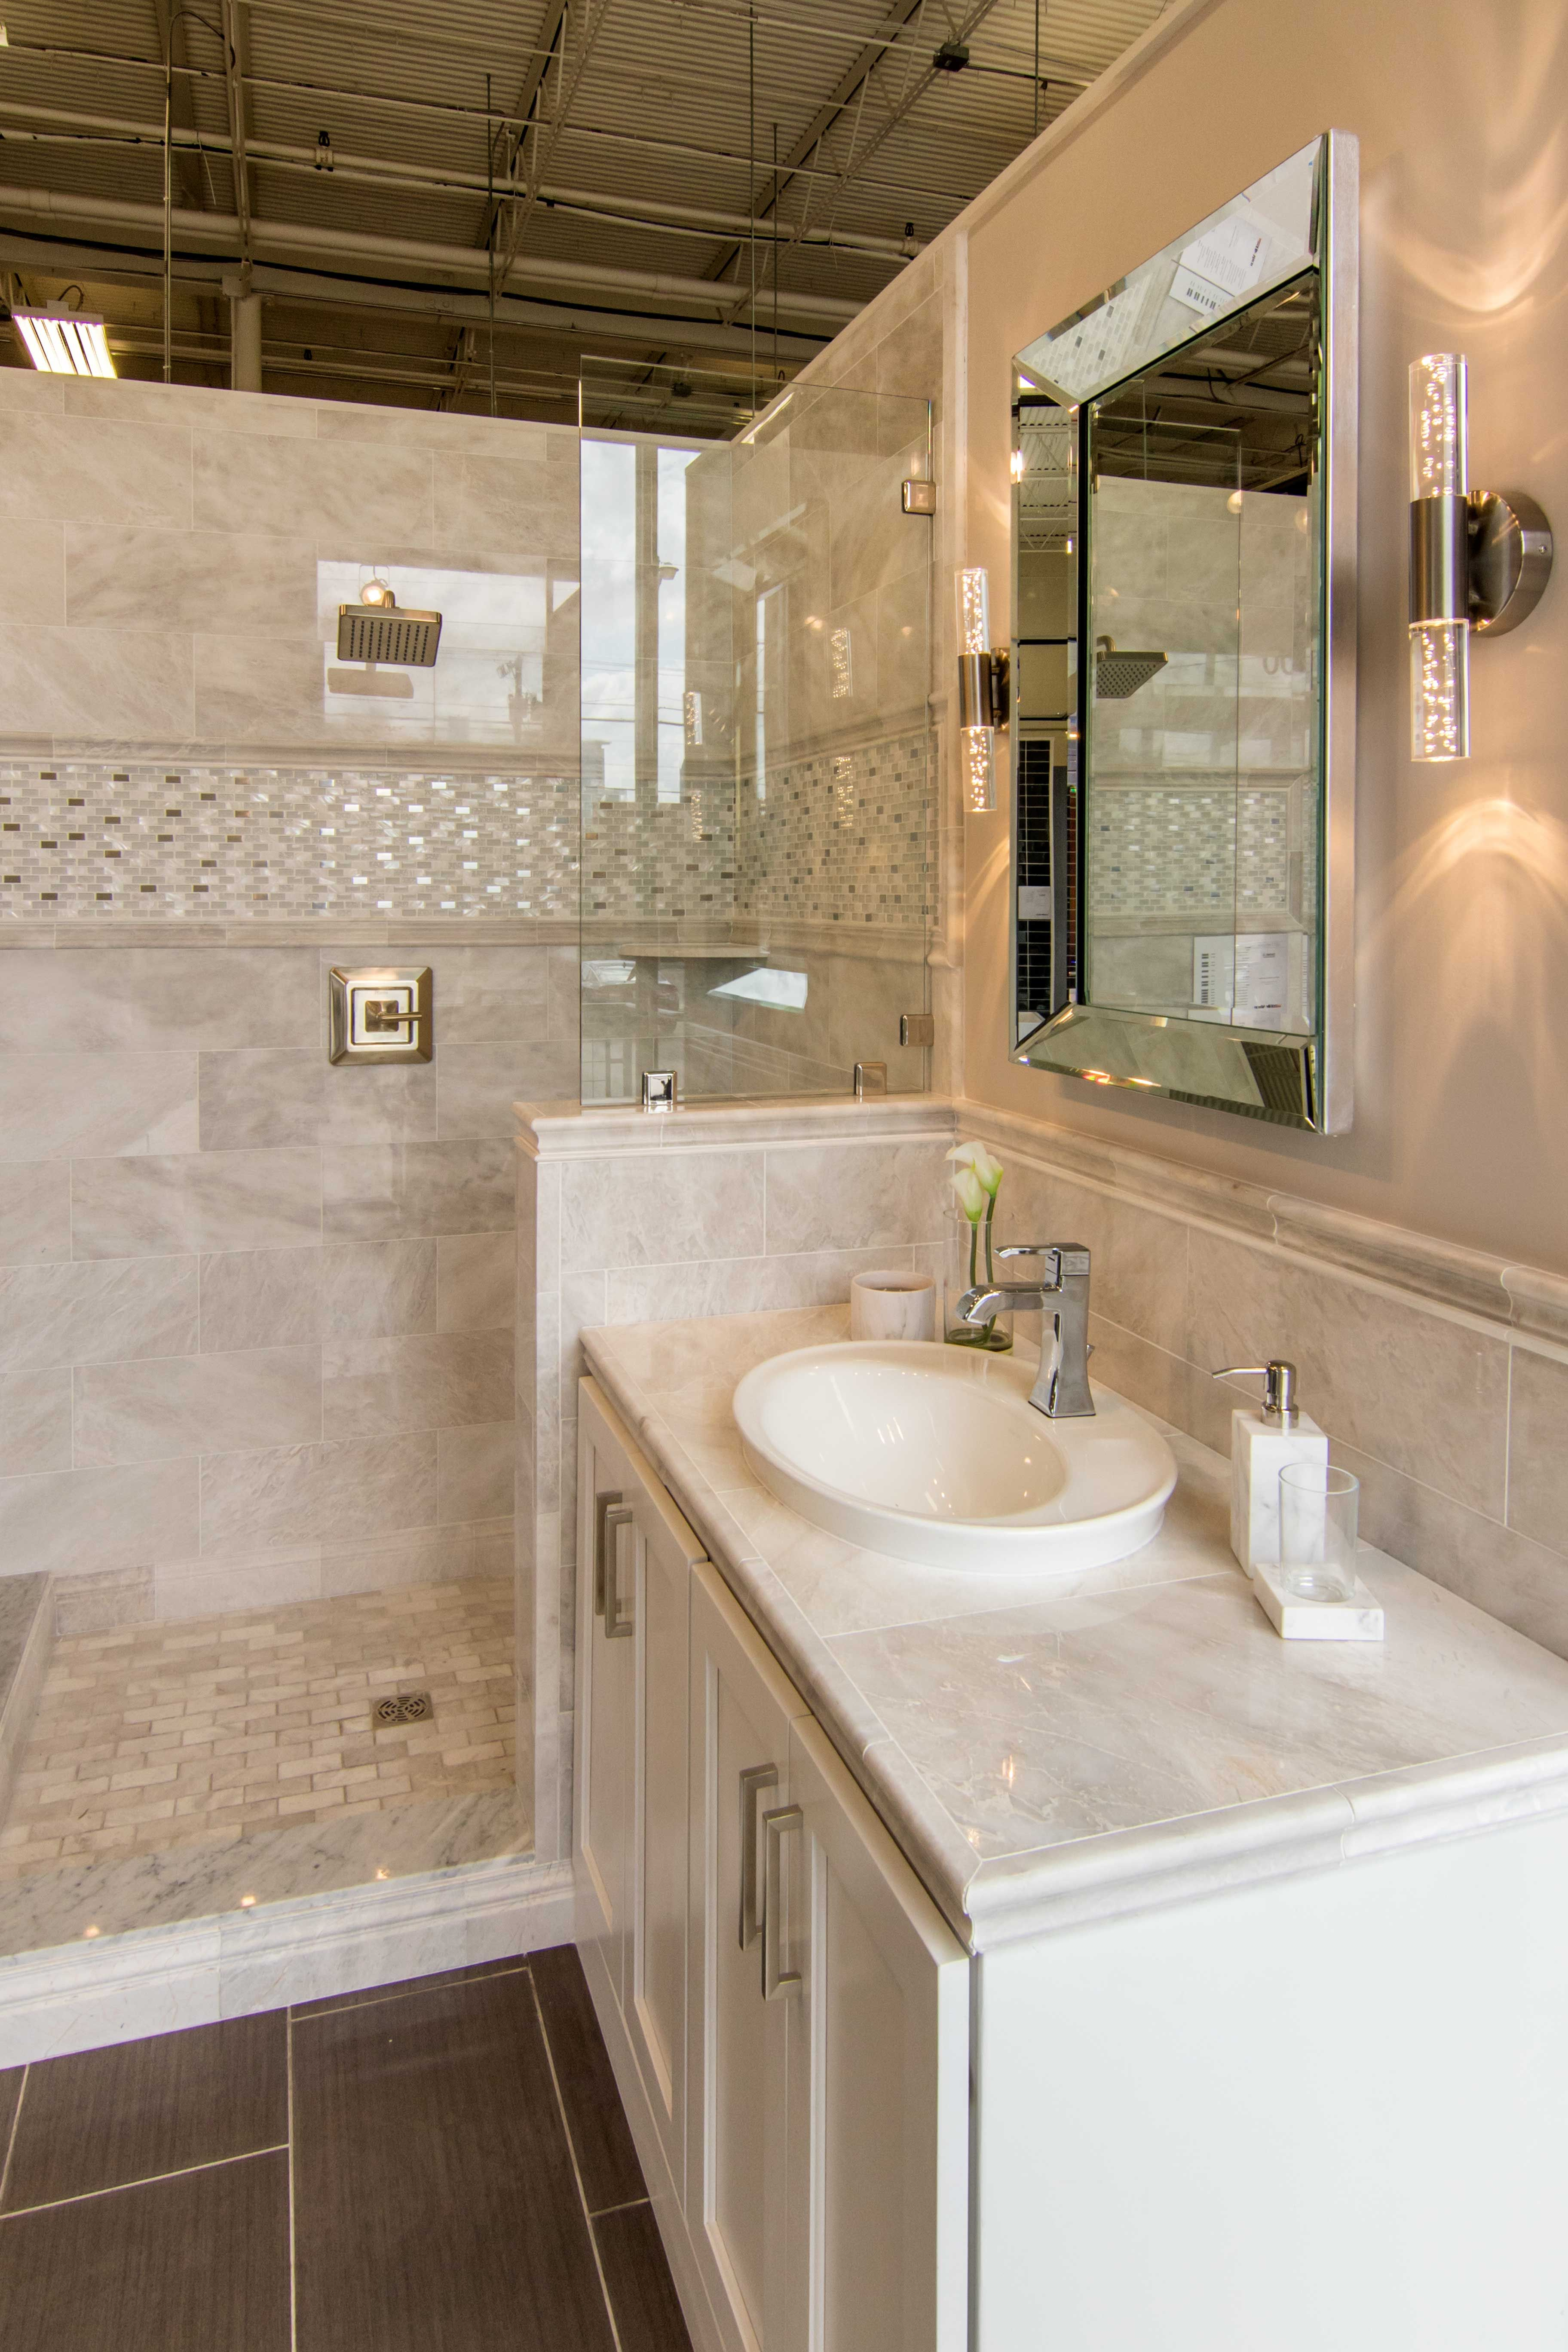 Polished marble tiles bathroom - Meram Blanc Carrara Polished Marble Floor Tile 12 X 24 In